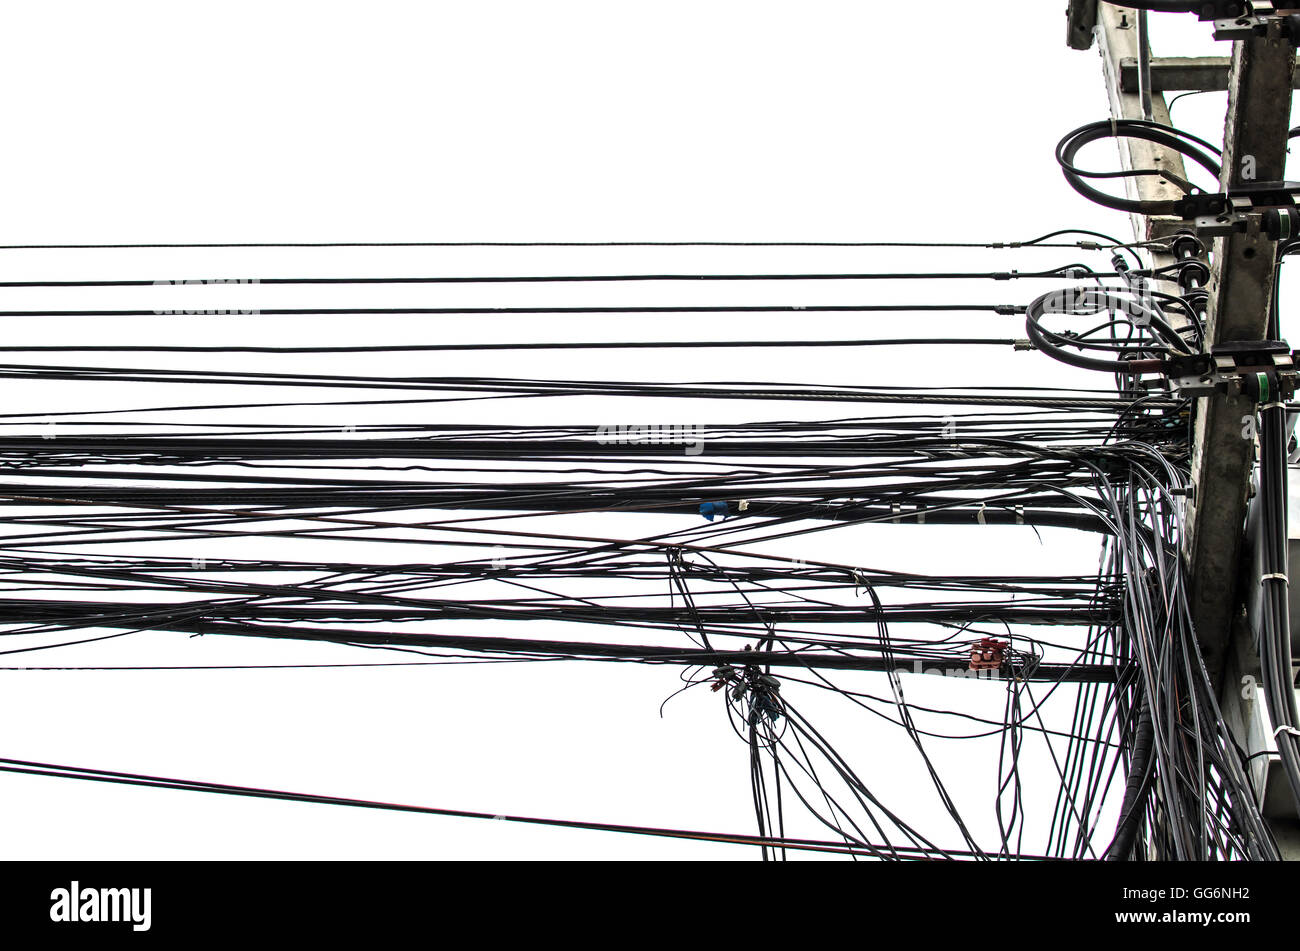 Telephone Cable Network Stock Photos Wiring For Rj45 Acronym Electricity Wire And Fiber Optic Of Internet In Thailand Image